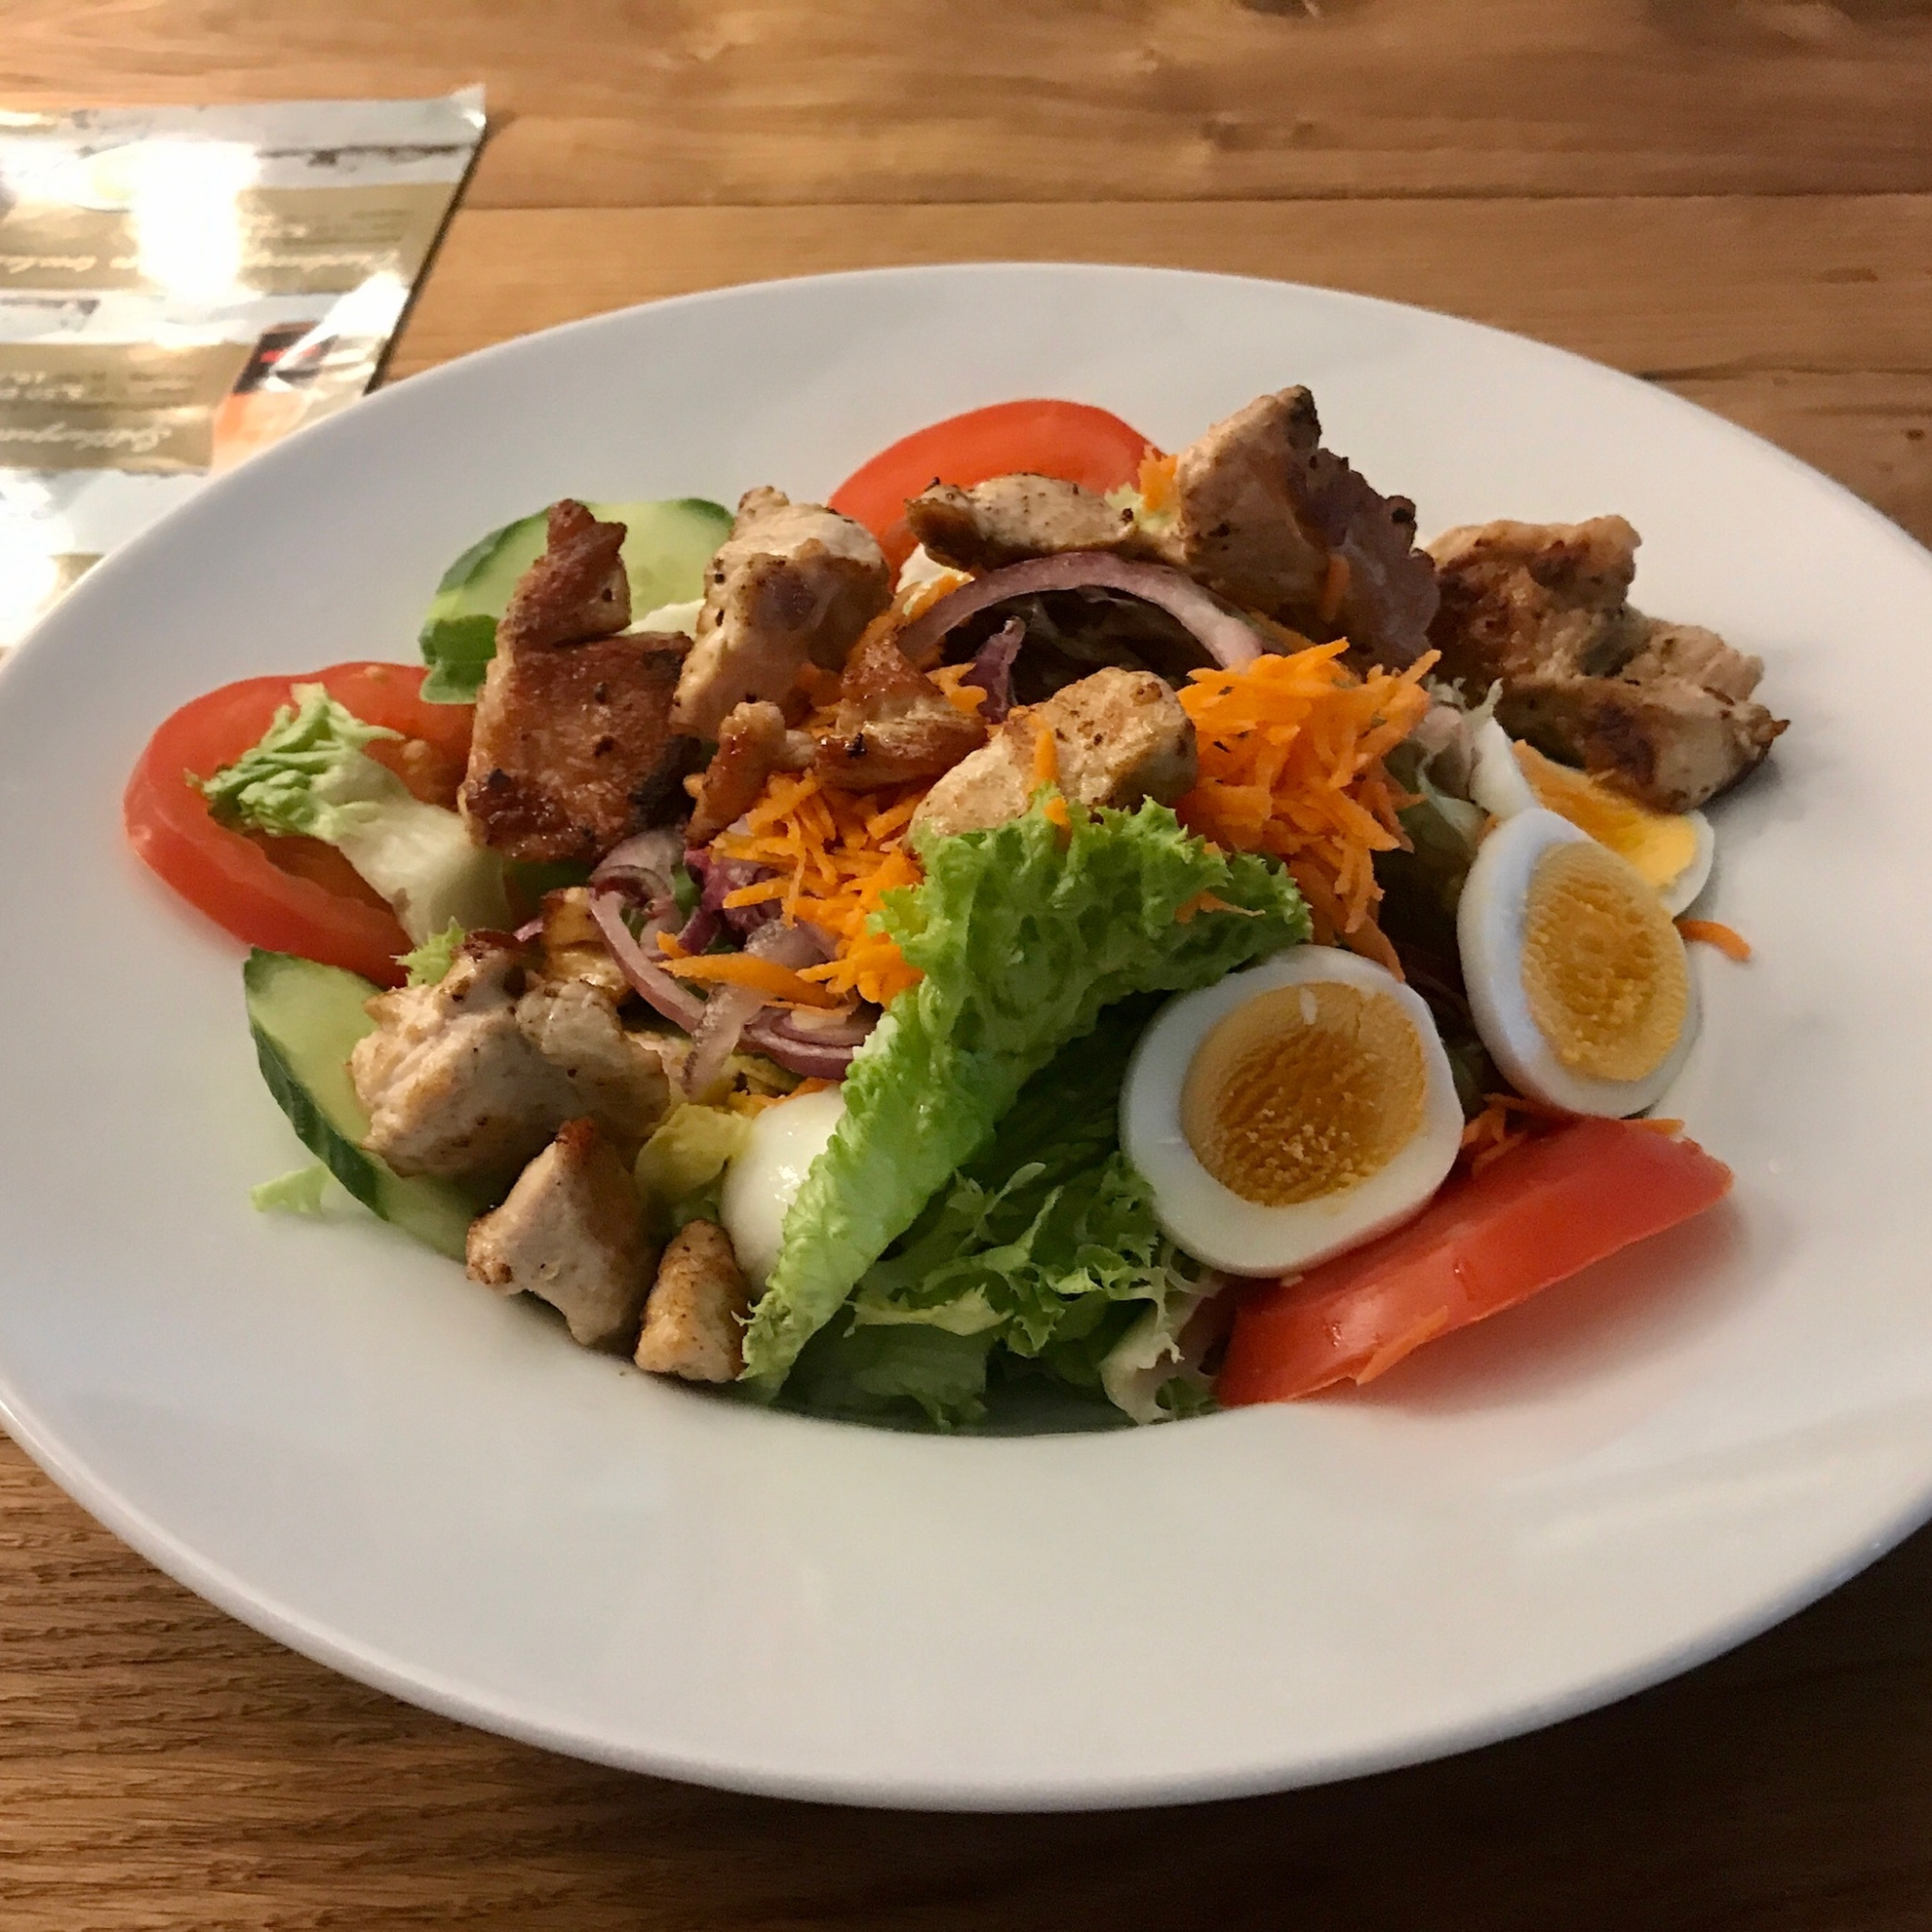 Restaurant-Wedel-Mühlenstein-Burger-Pizza-Brunch-American Salad